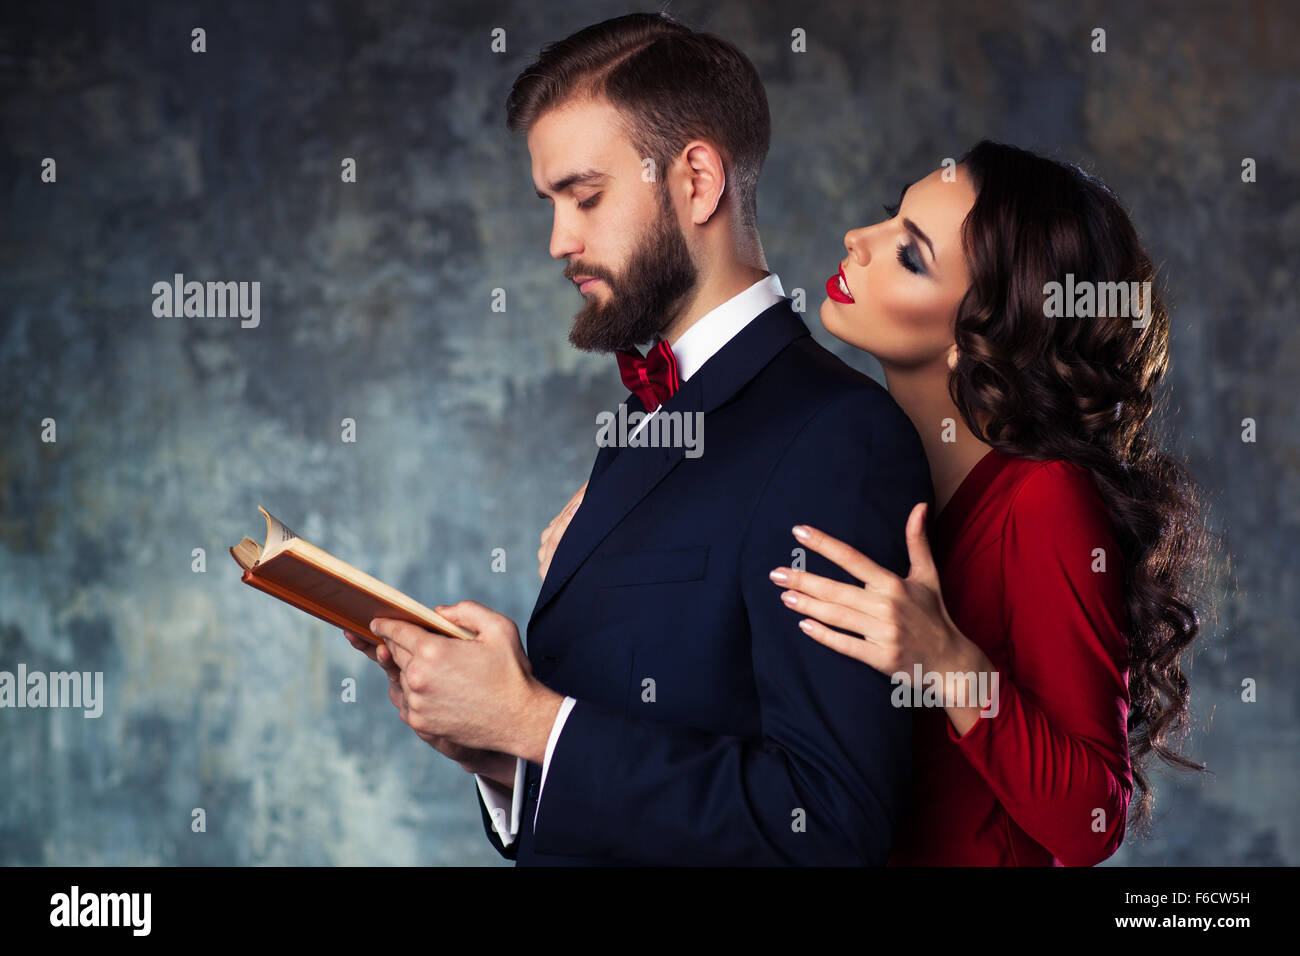 e9fb7a01e305b Young elegant couple in evening dress portrait. Man reading book and woman  trying to attract and embrace him.